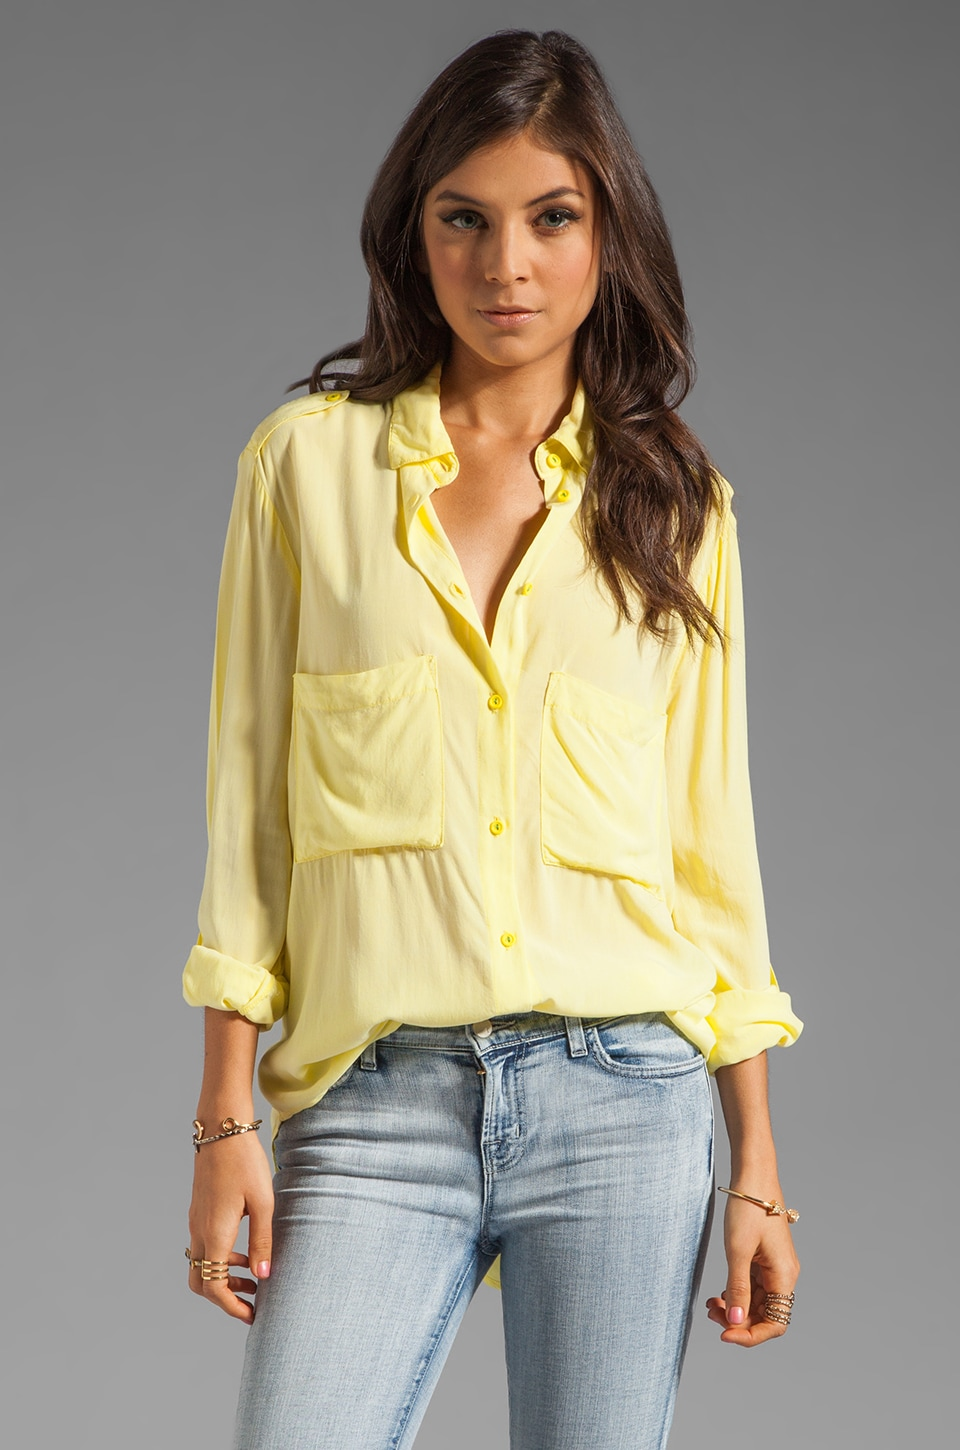 SAM&LAVI Trixie Blouse in Bright Lime